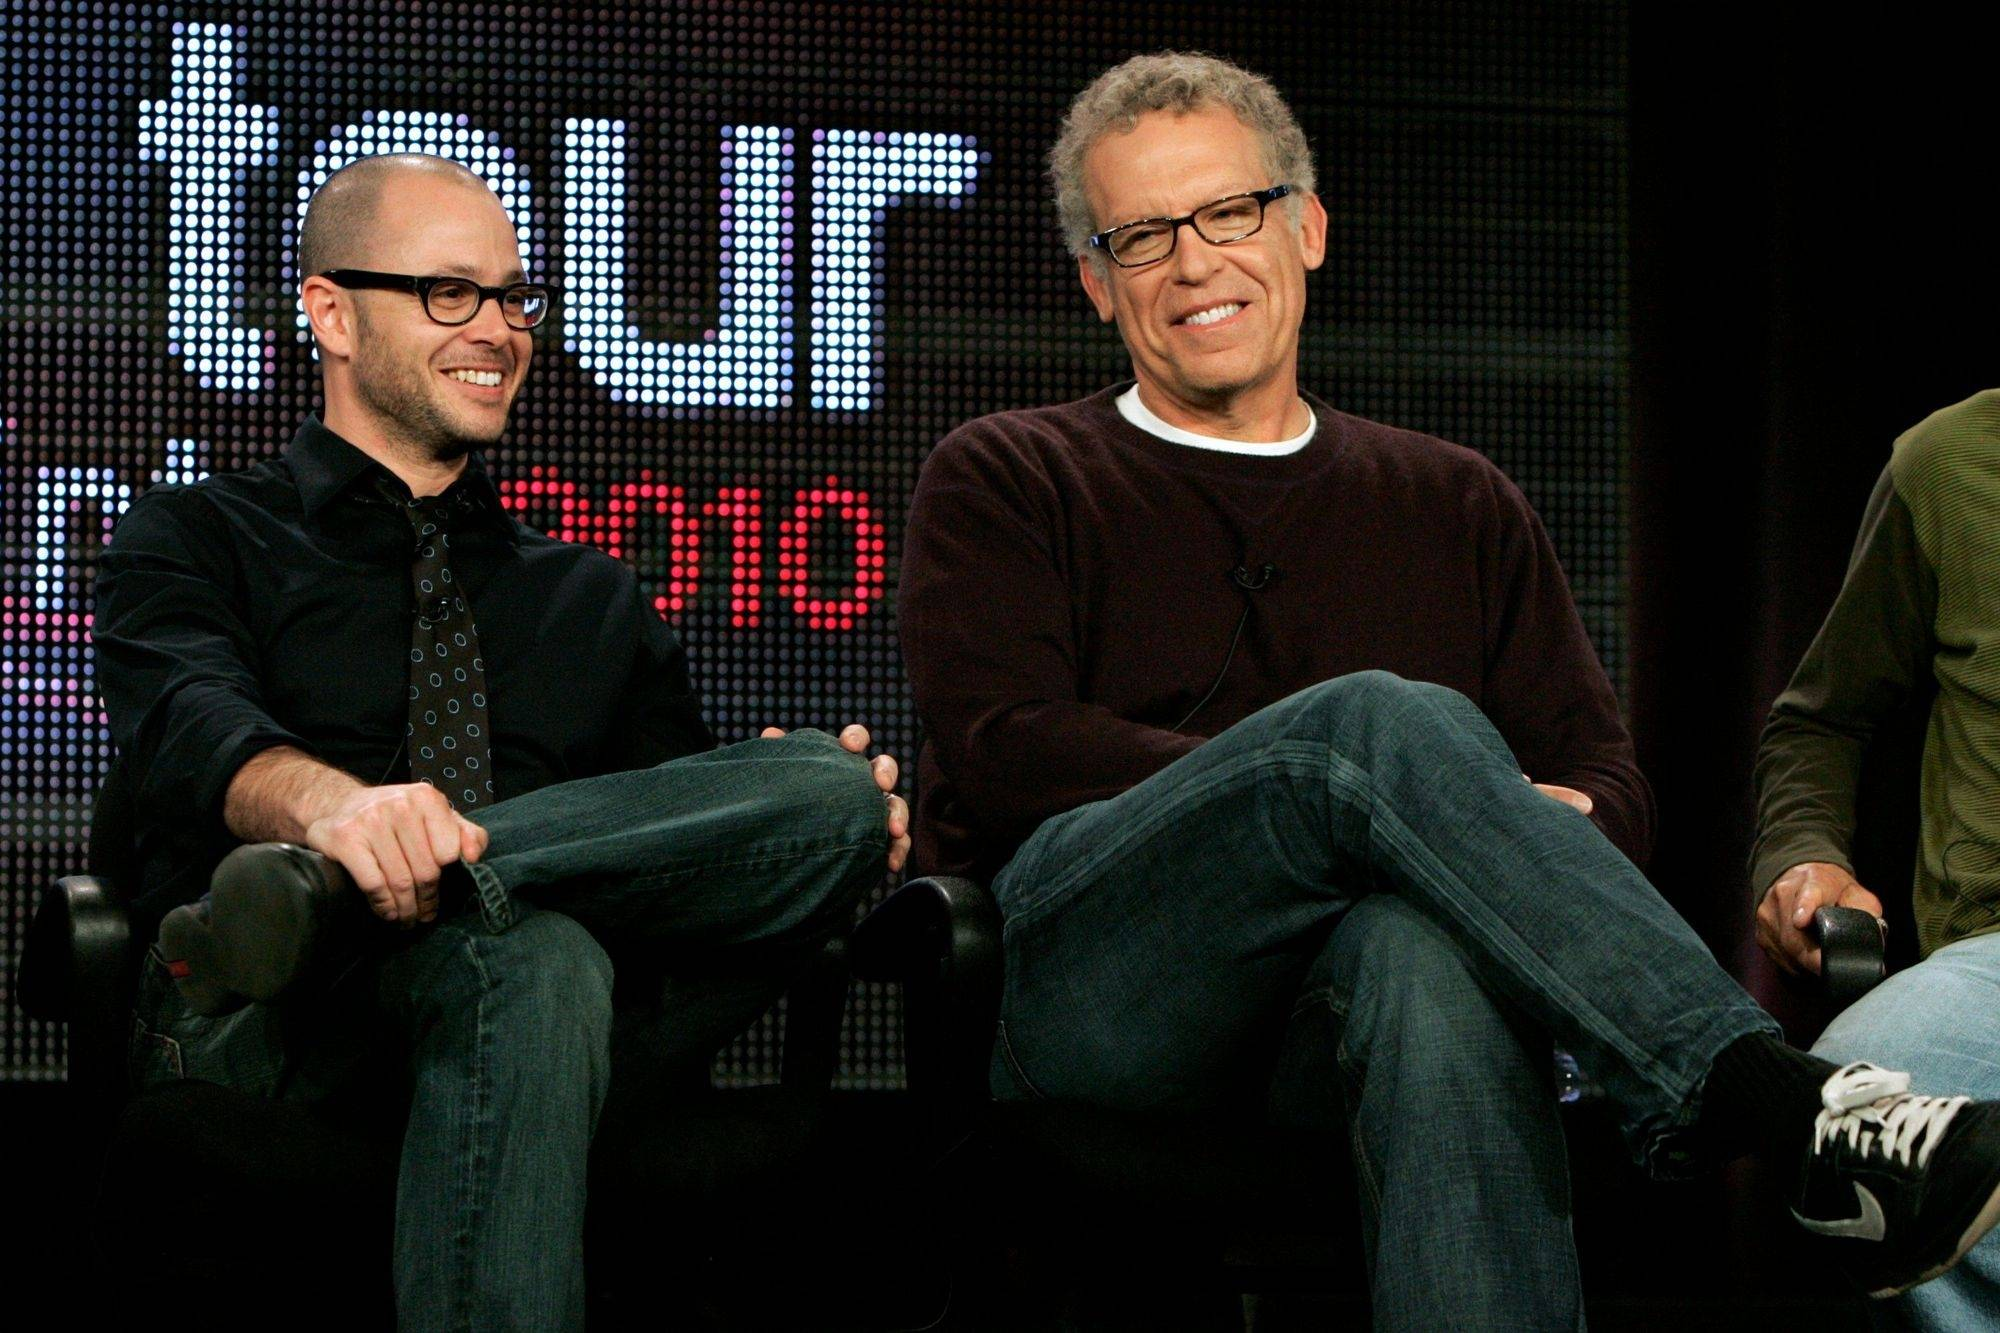 """Lost"" producers Damon Lindelof, left, and Carlton Cuse promise answers - but not all the answers."